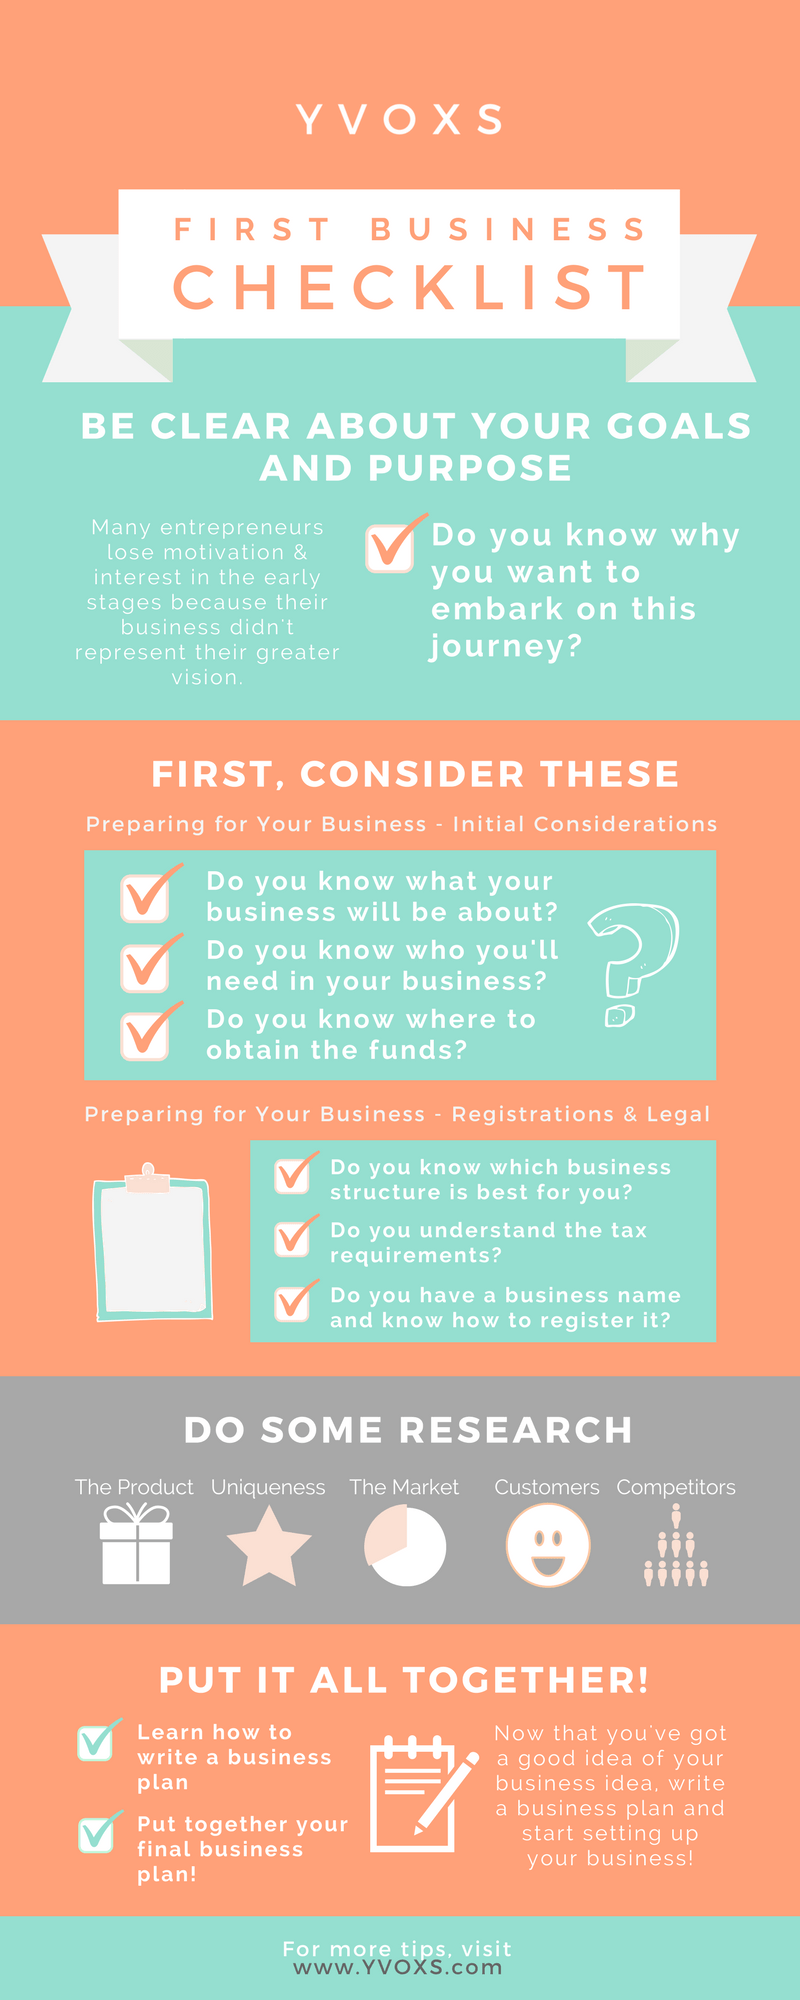 Starting a Business Checklist Infographic